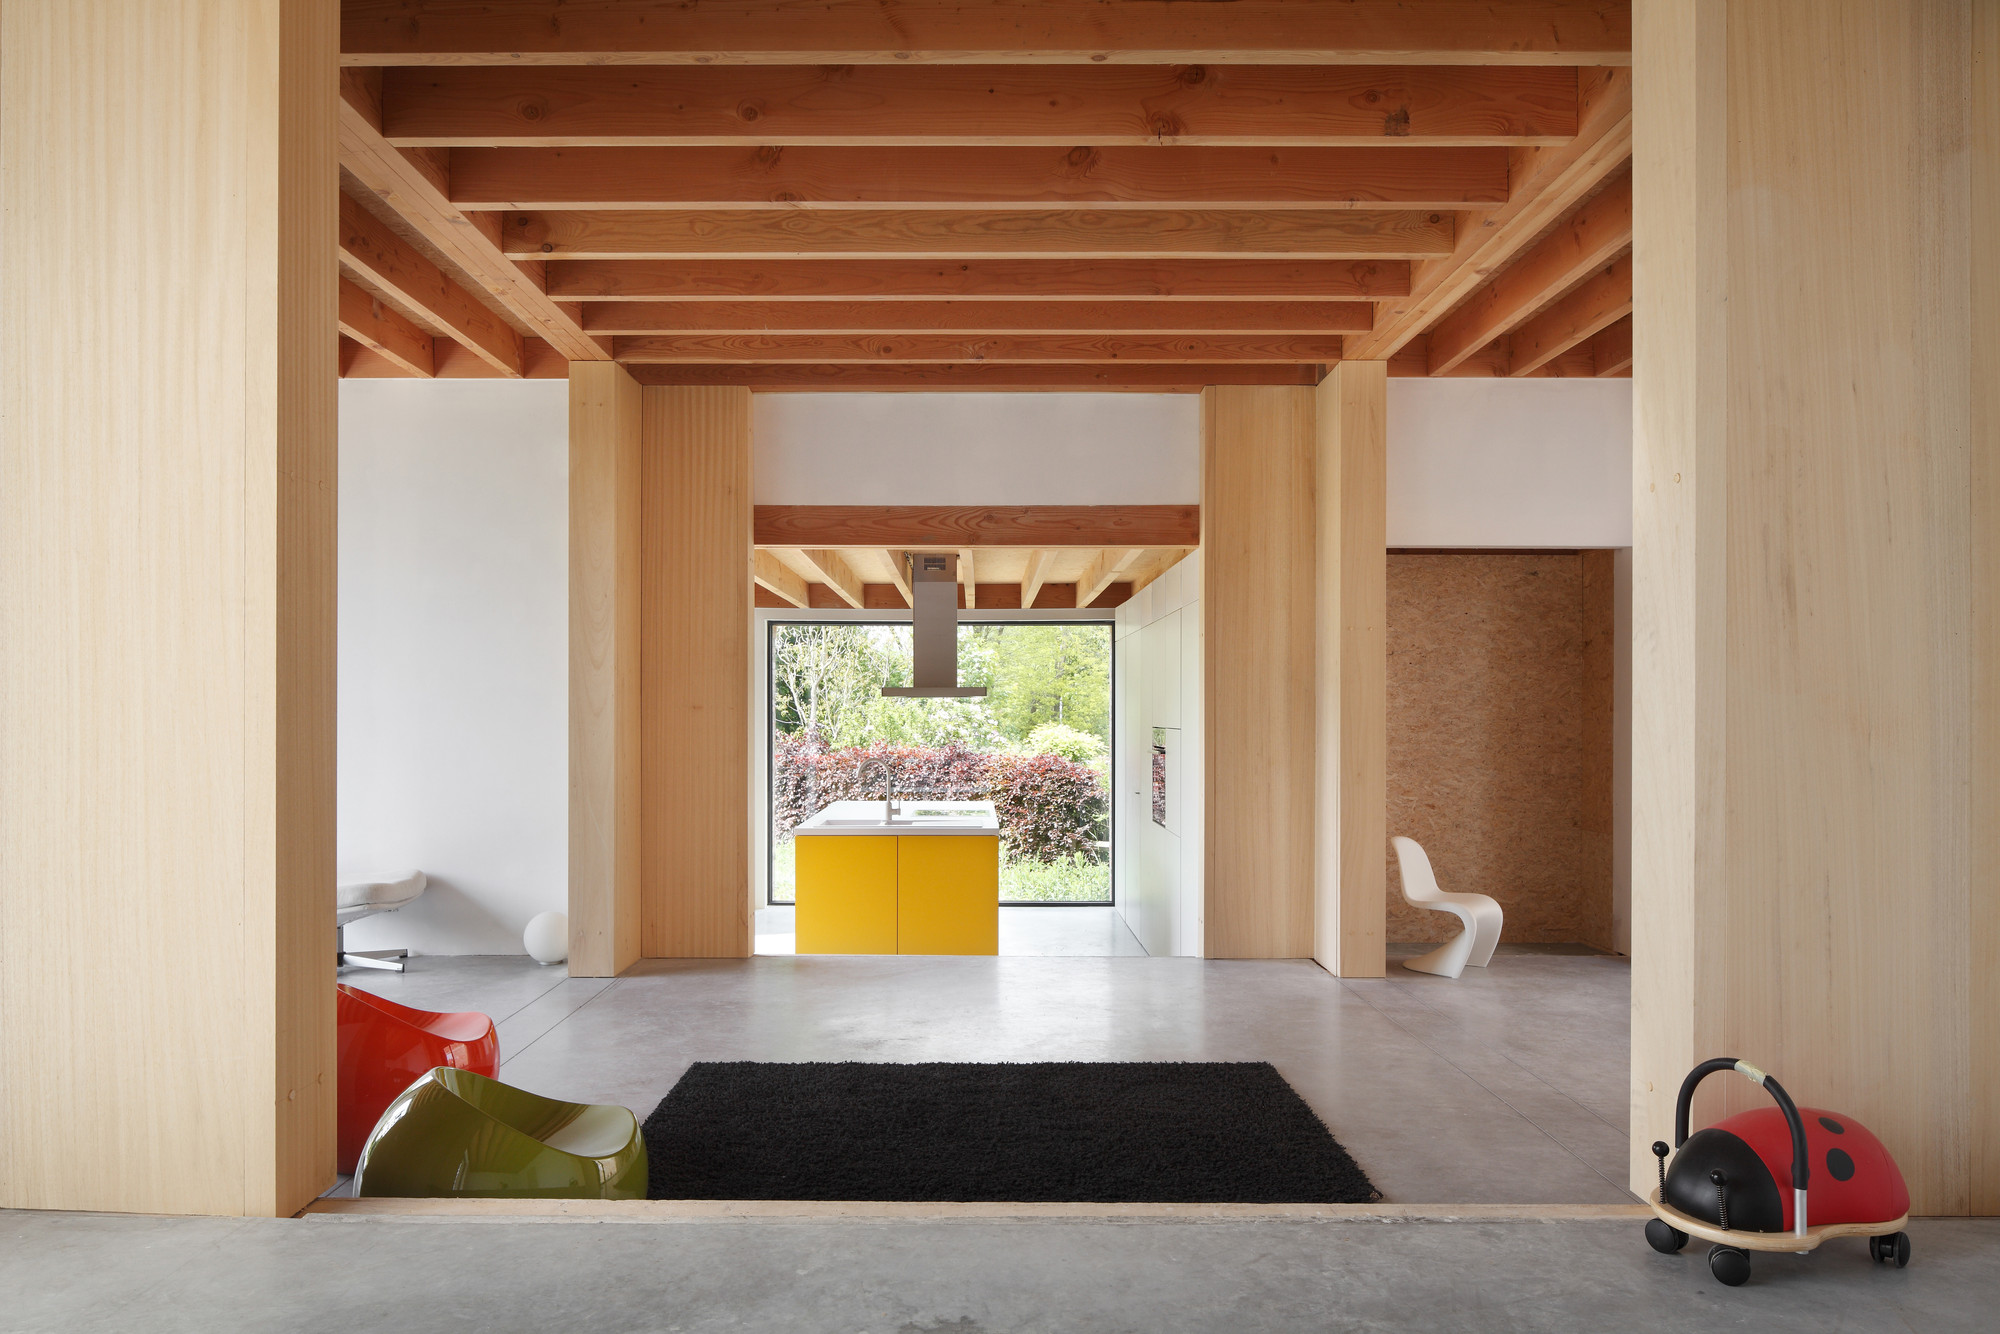 Gallery of dna house blaf architecten 5 for Enfilade architecture